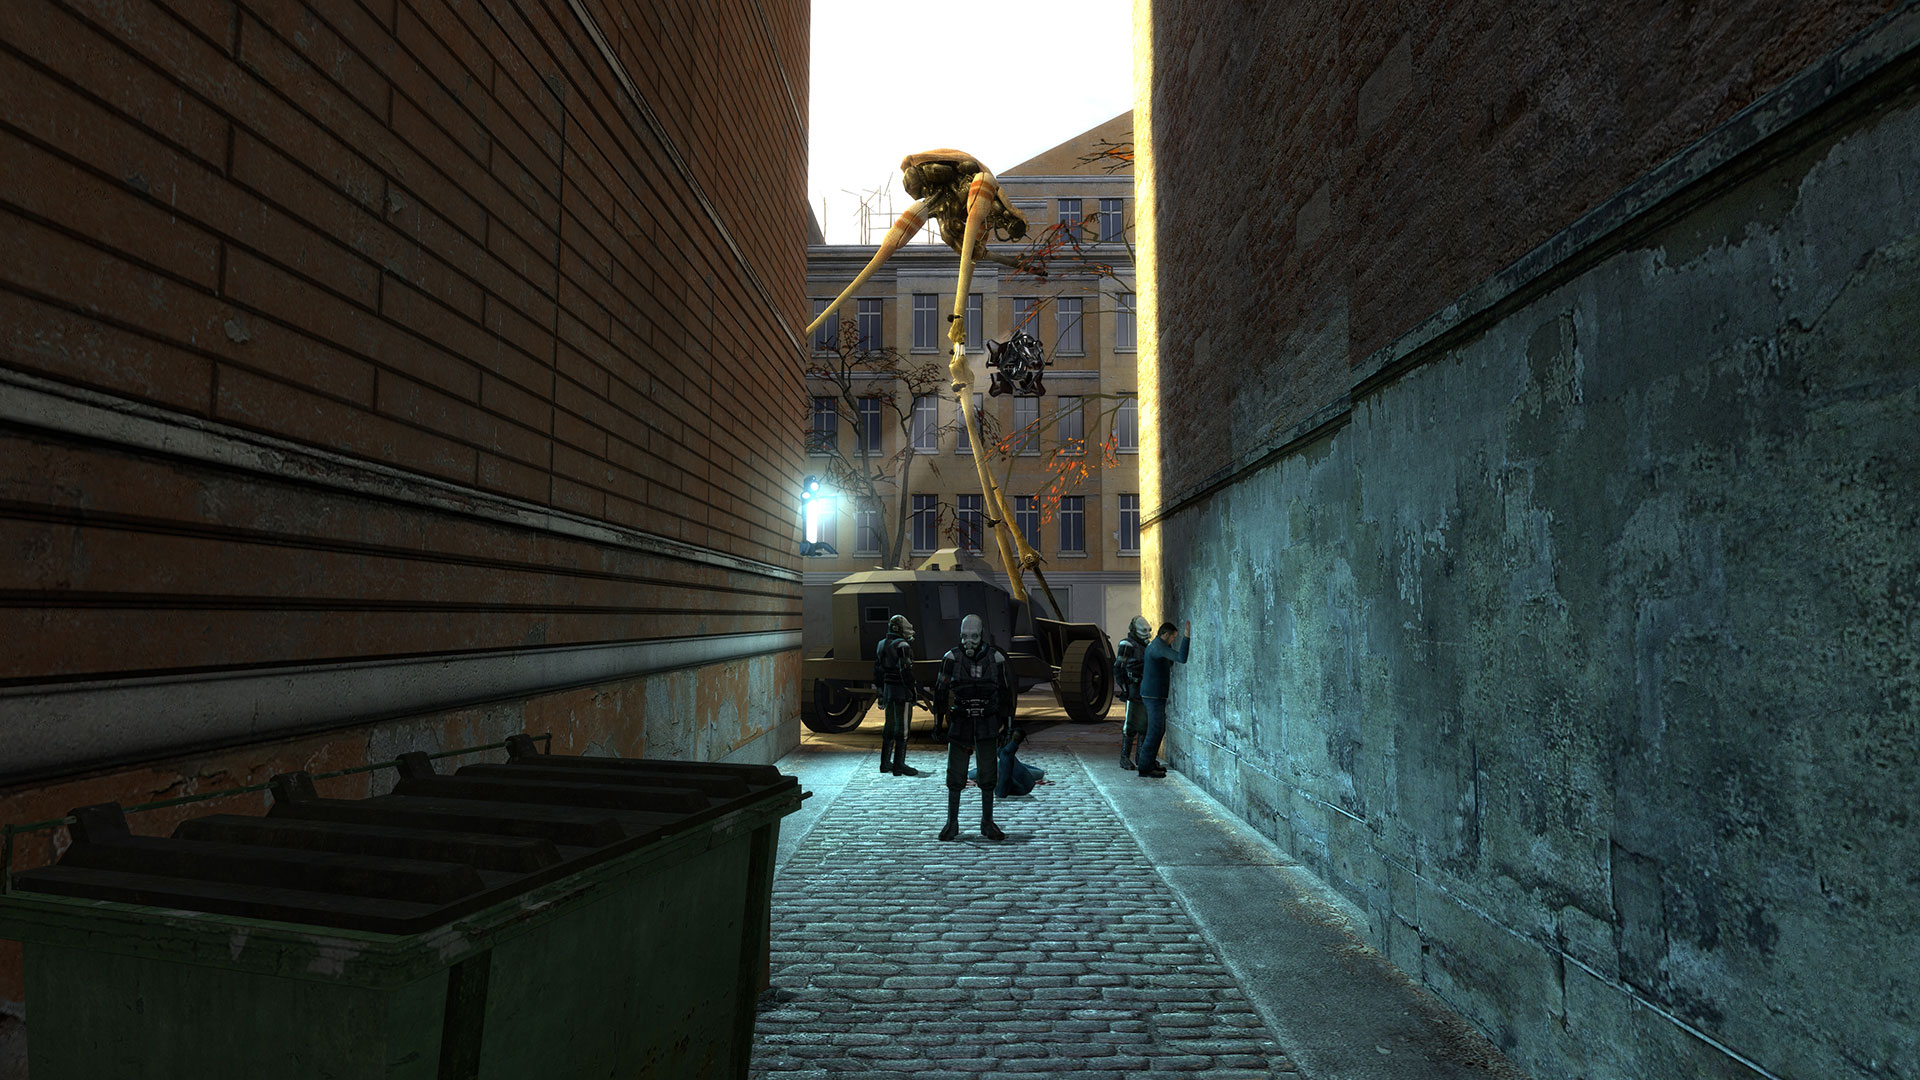 Half Life 2: VR Mod Remasters The Original Game With